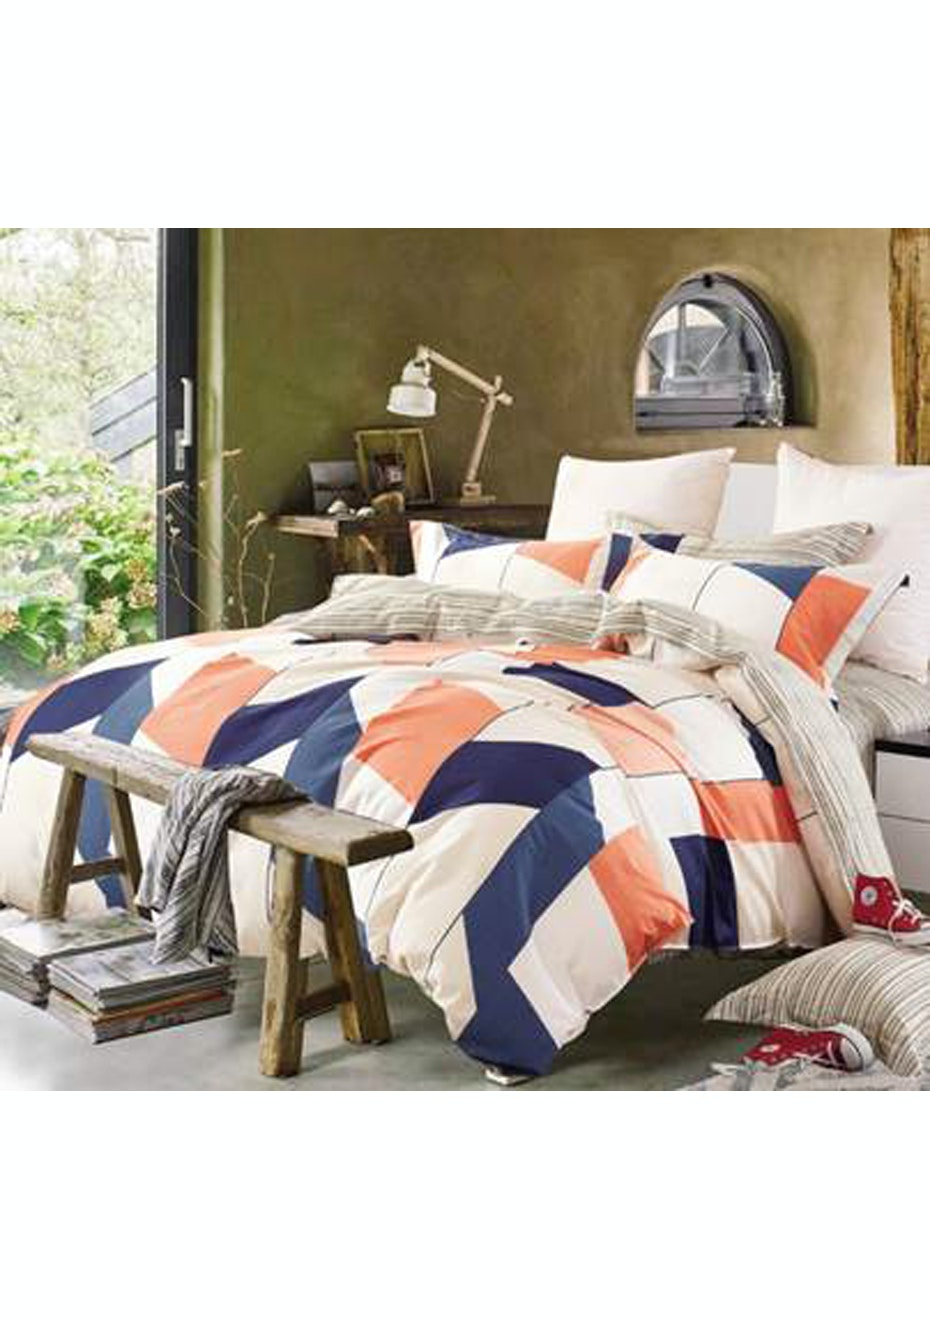 Isla Quilt Cover Set - Reversible Design - 100% Cotton -  King Bed